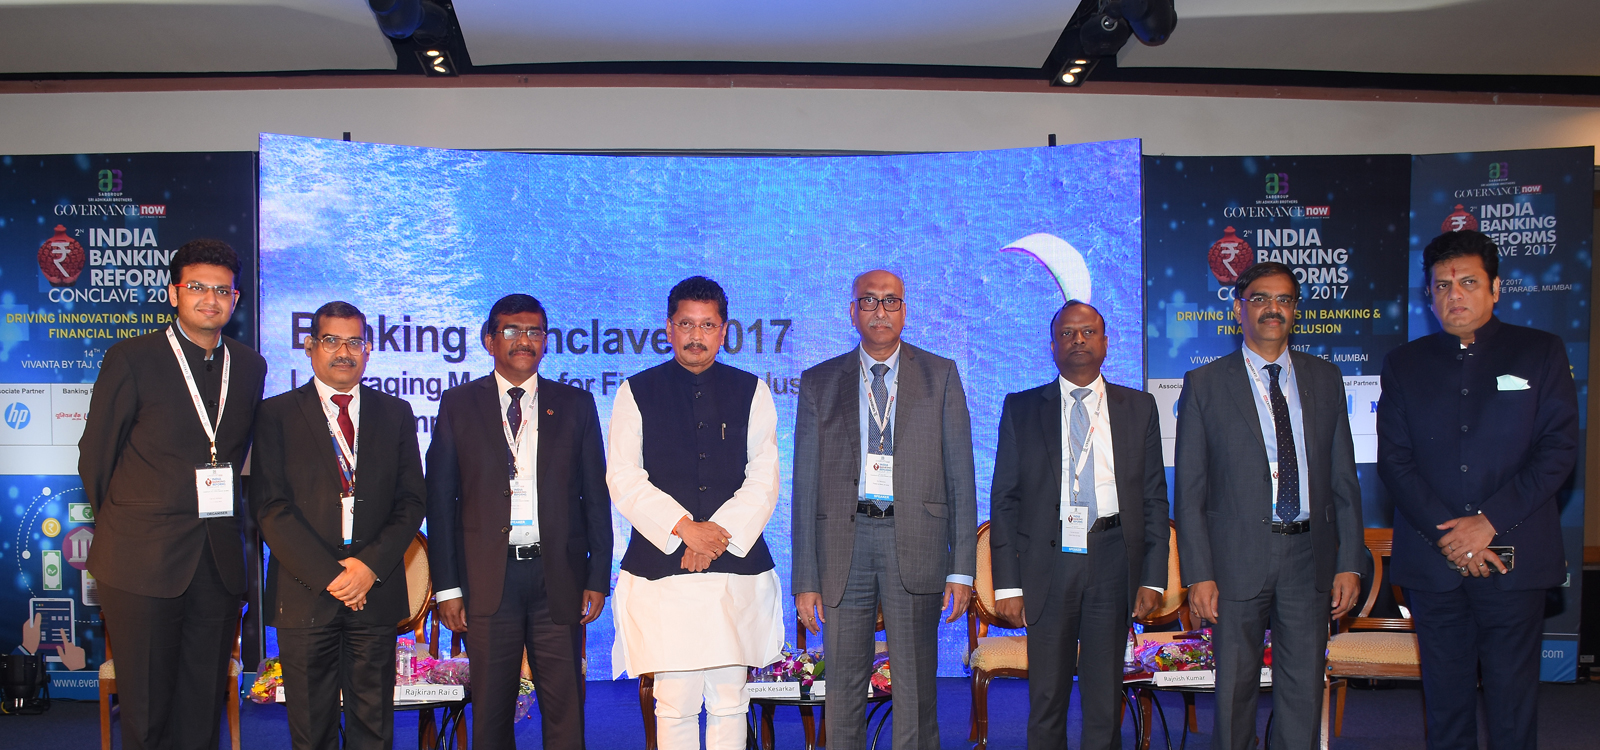 India Banking Reforms Conclave 2017